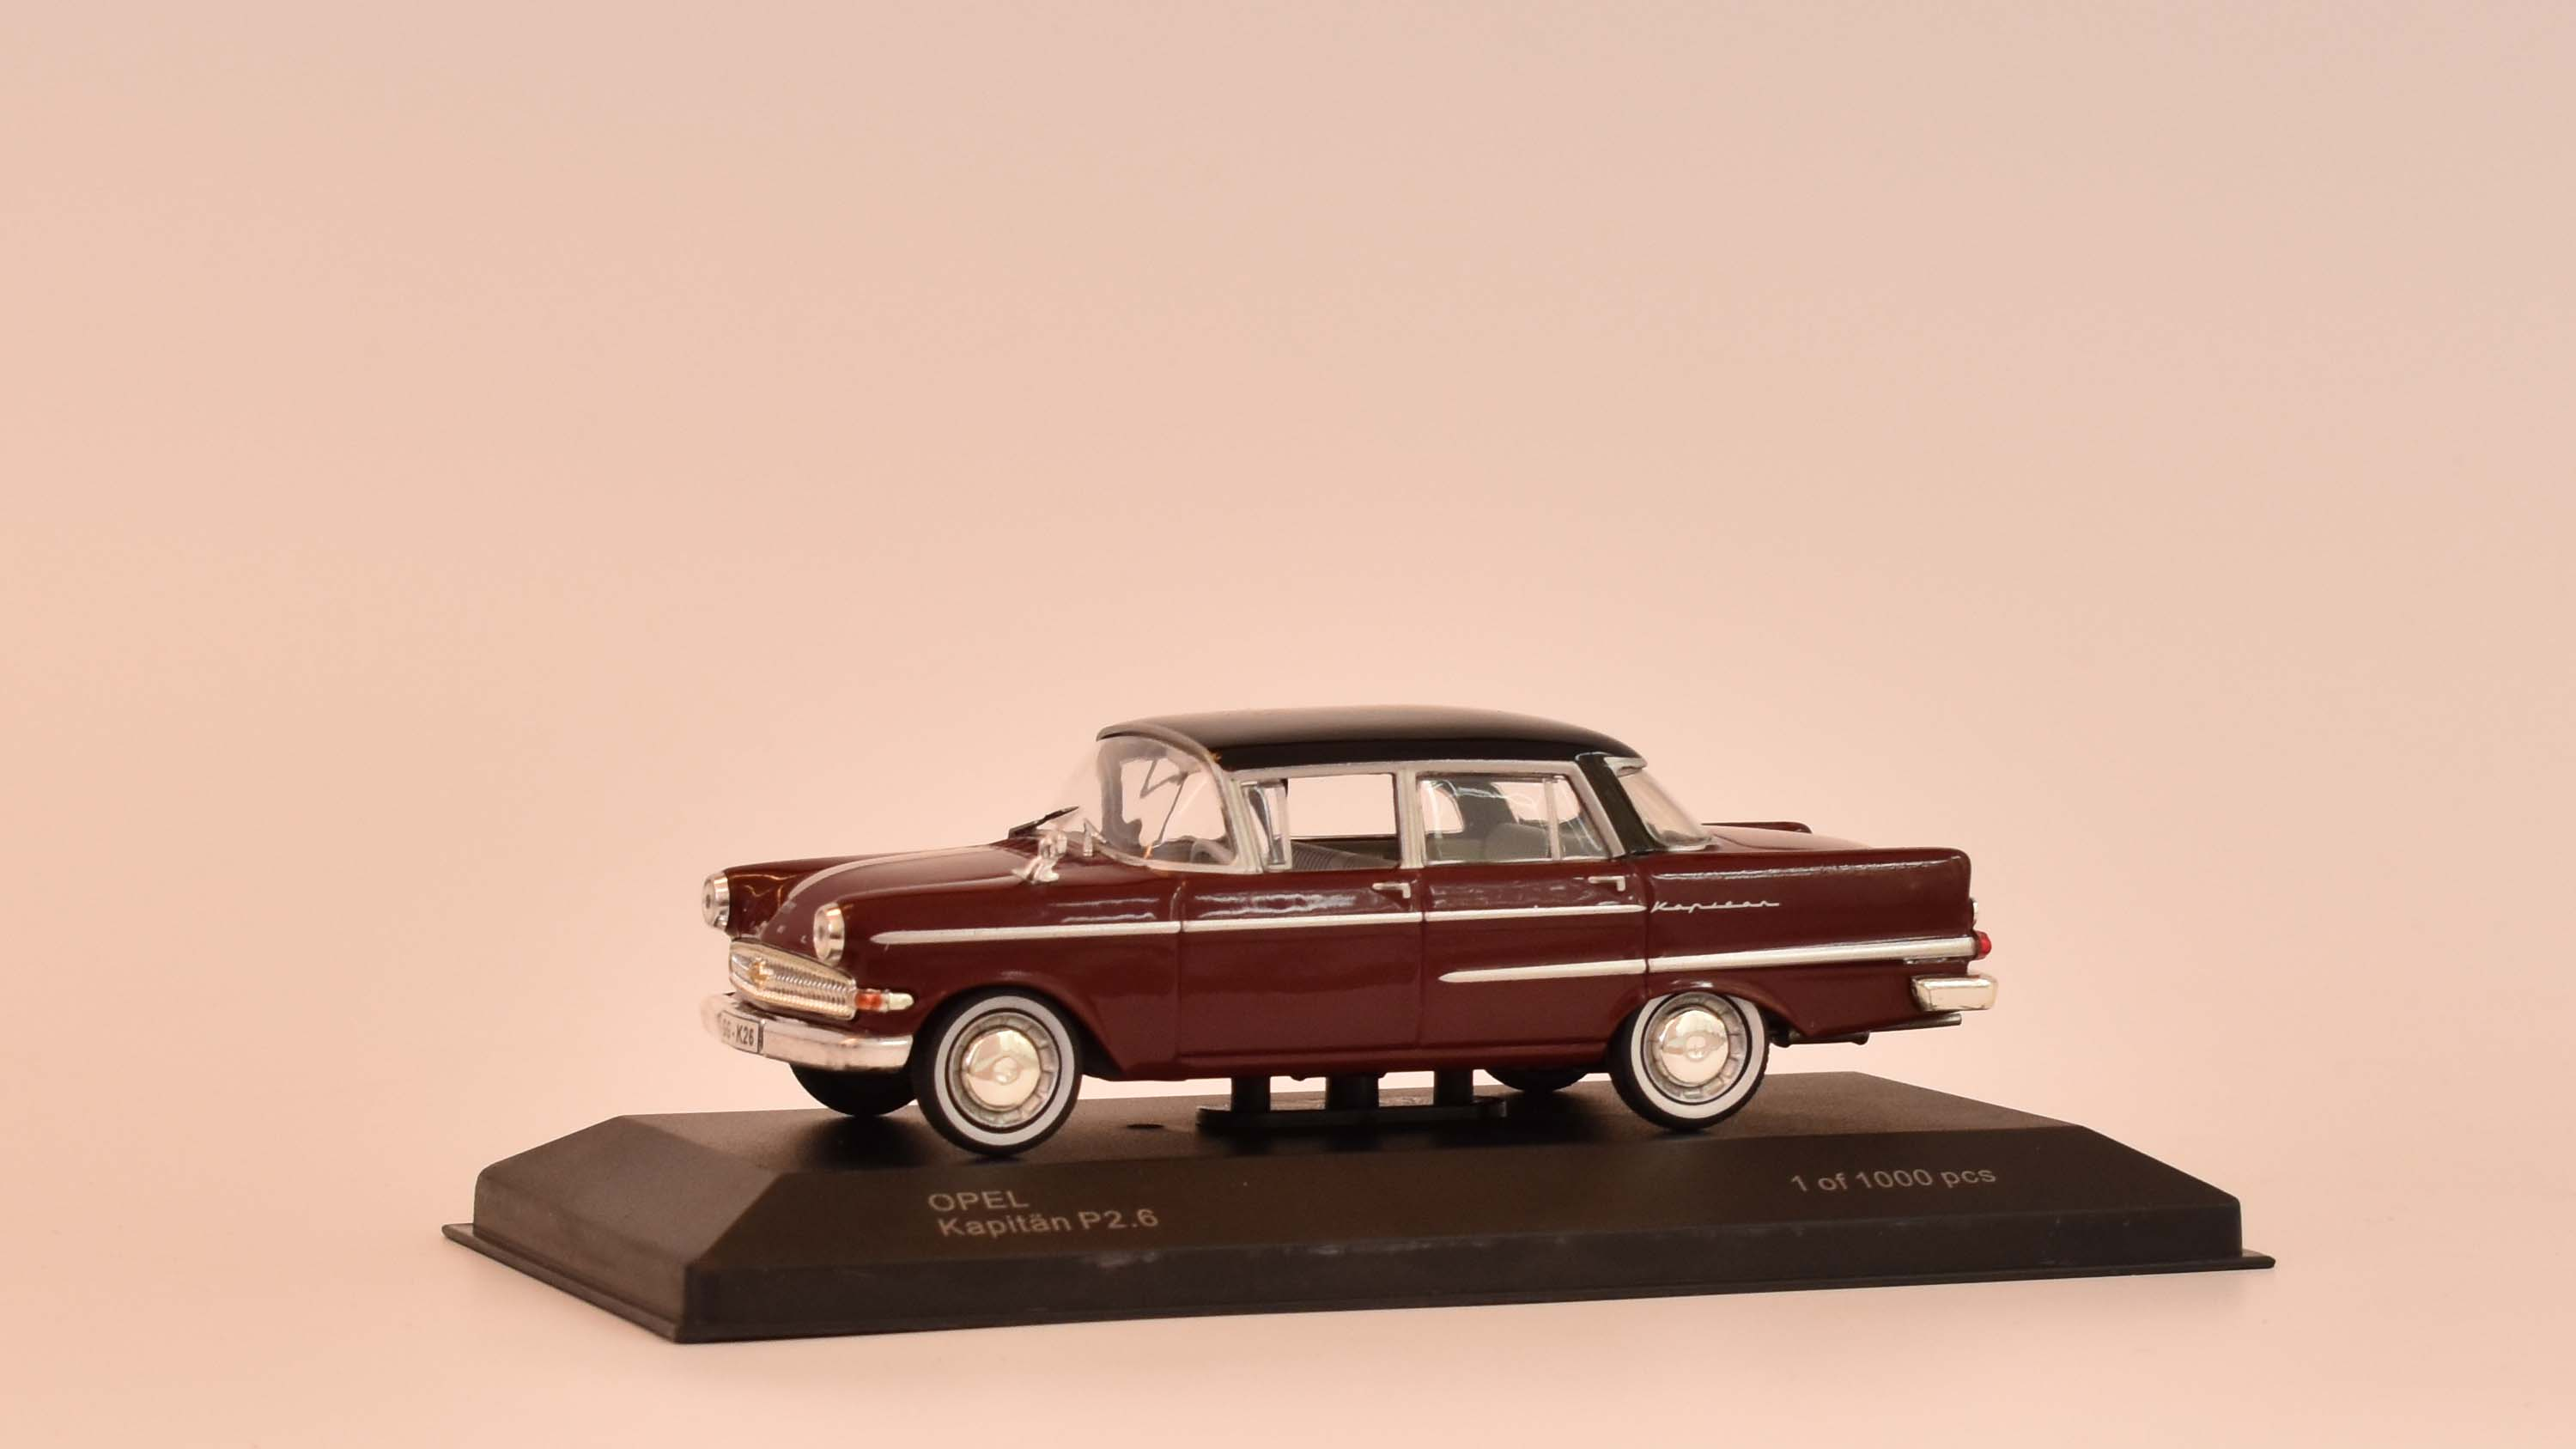 Opel Kapitan P2.6 - 1959 1:43 - WhiteBox časopis s modelem